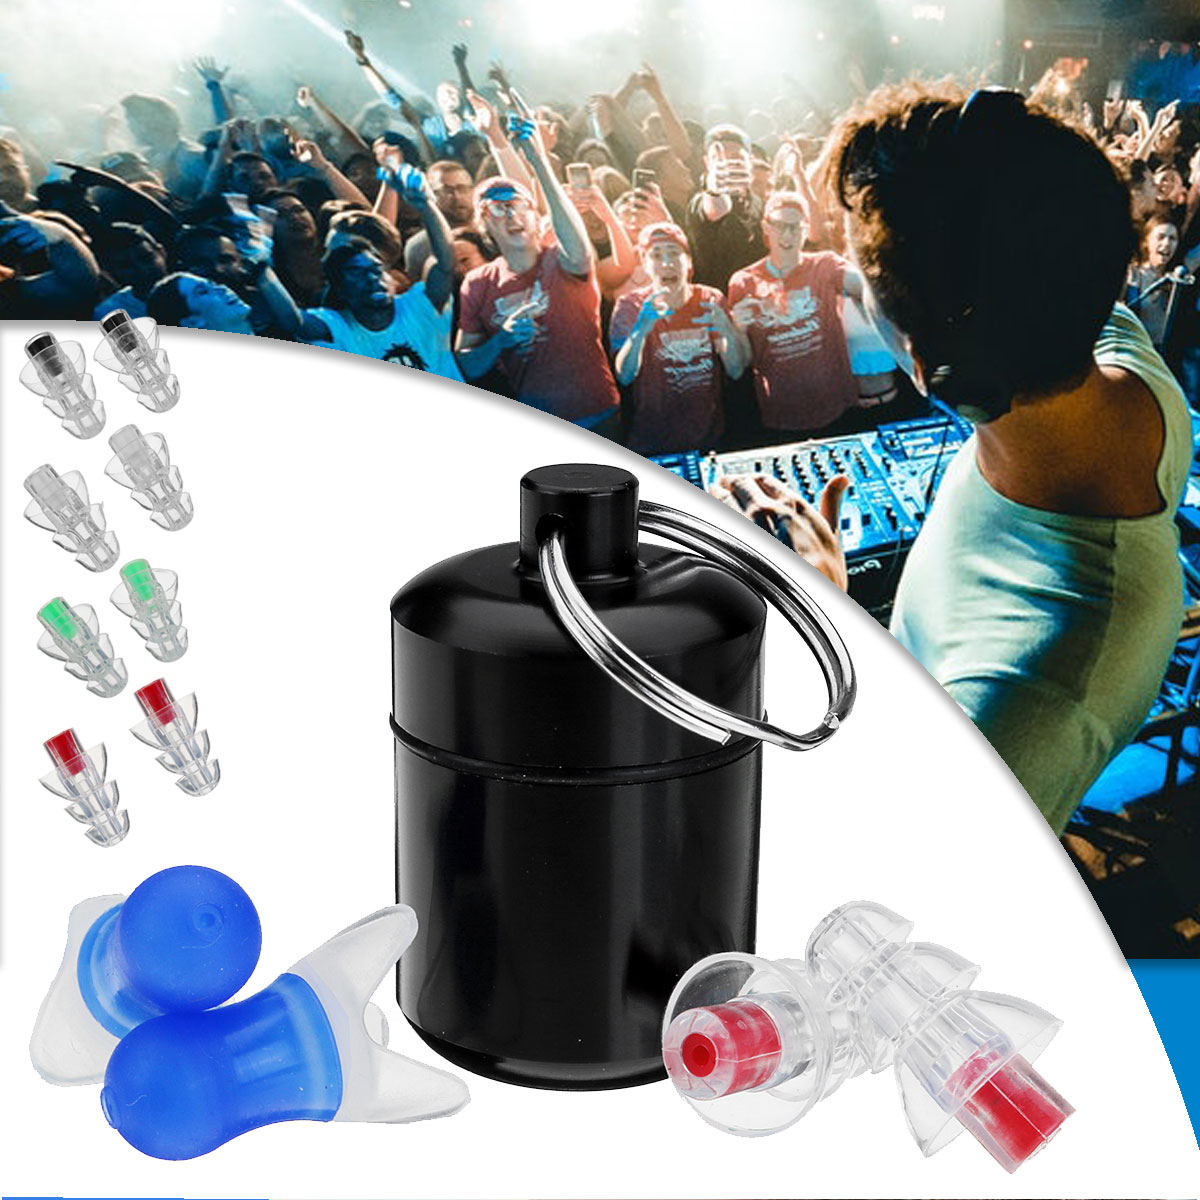 Safurance 2Pcs Noise Cancelling Earplugs Hearing Protection Reusable Silicone Ear Plugs For Sleep Bar whit Bottle safurance 2pairs noise cancelling hearing protection earplugs for concerts musician motorcycles reusable silicone ear plugs